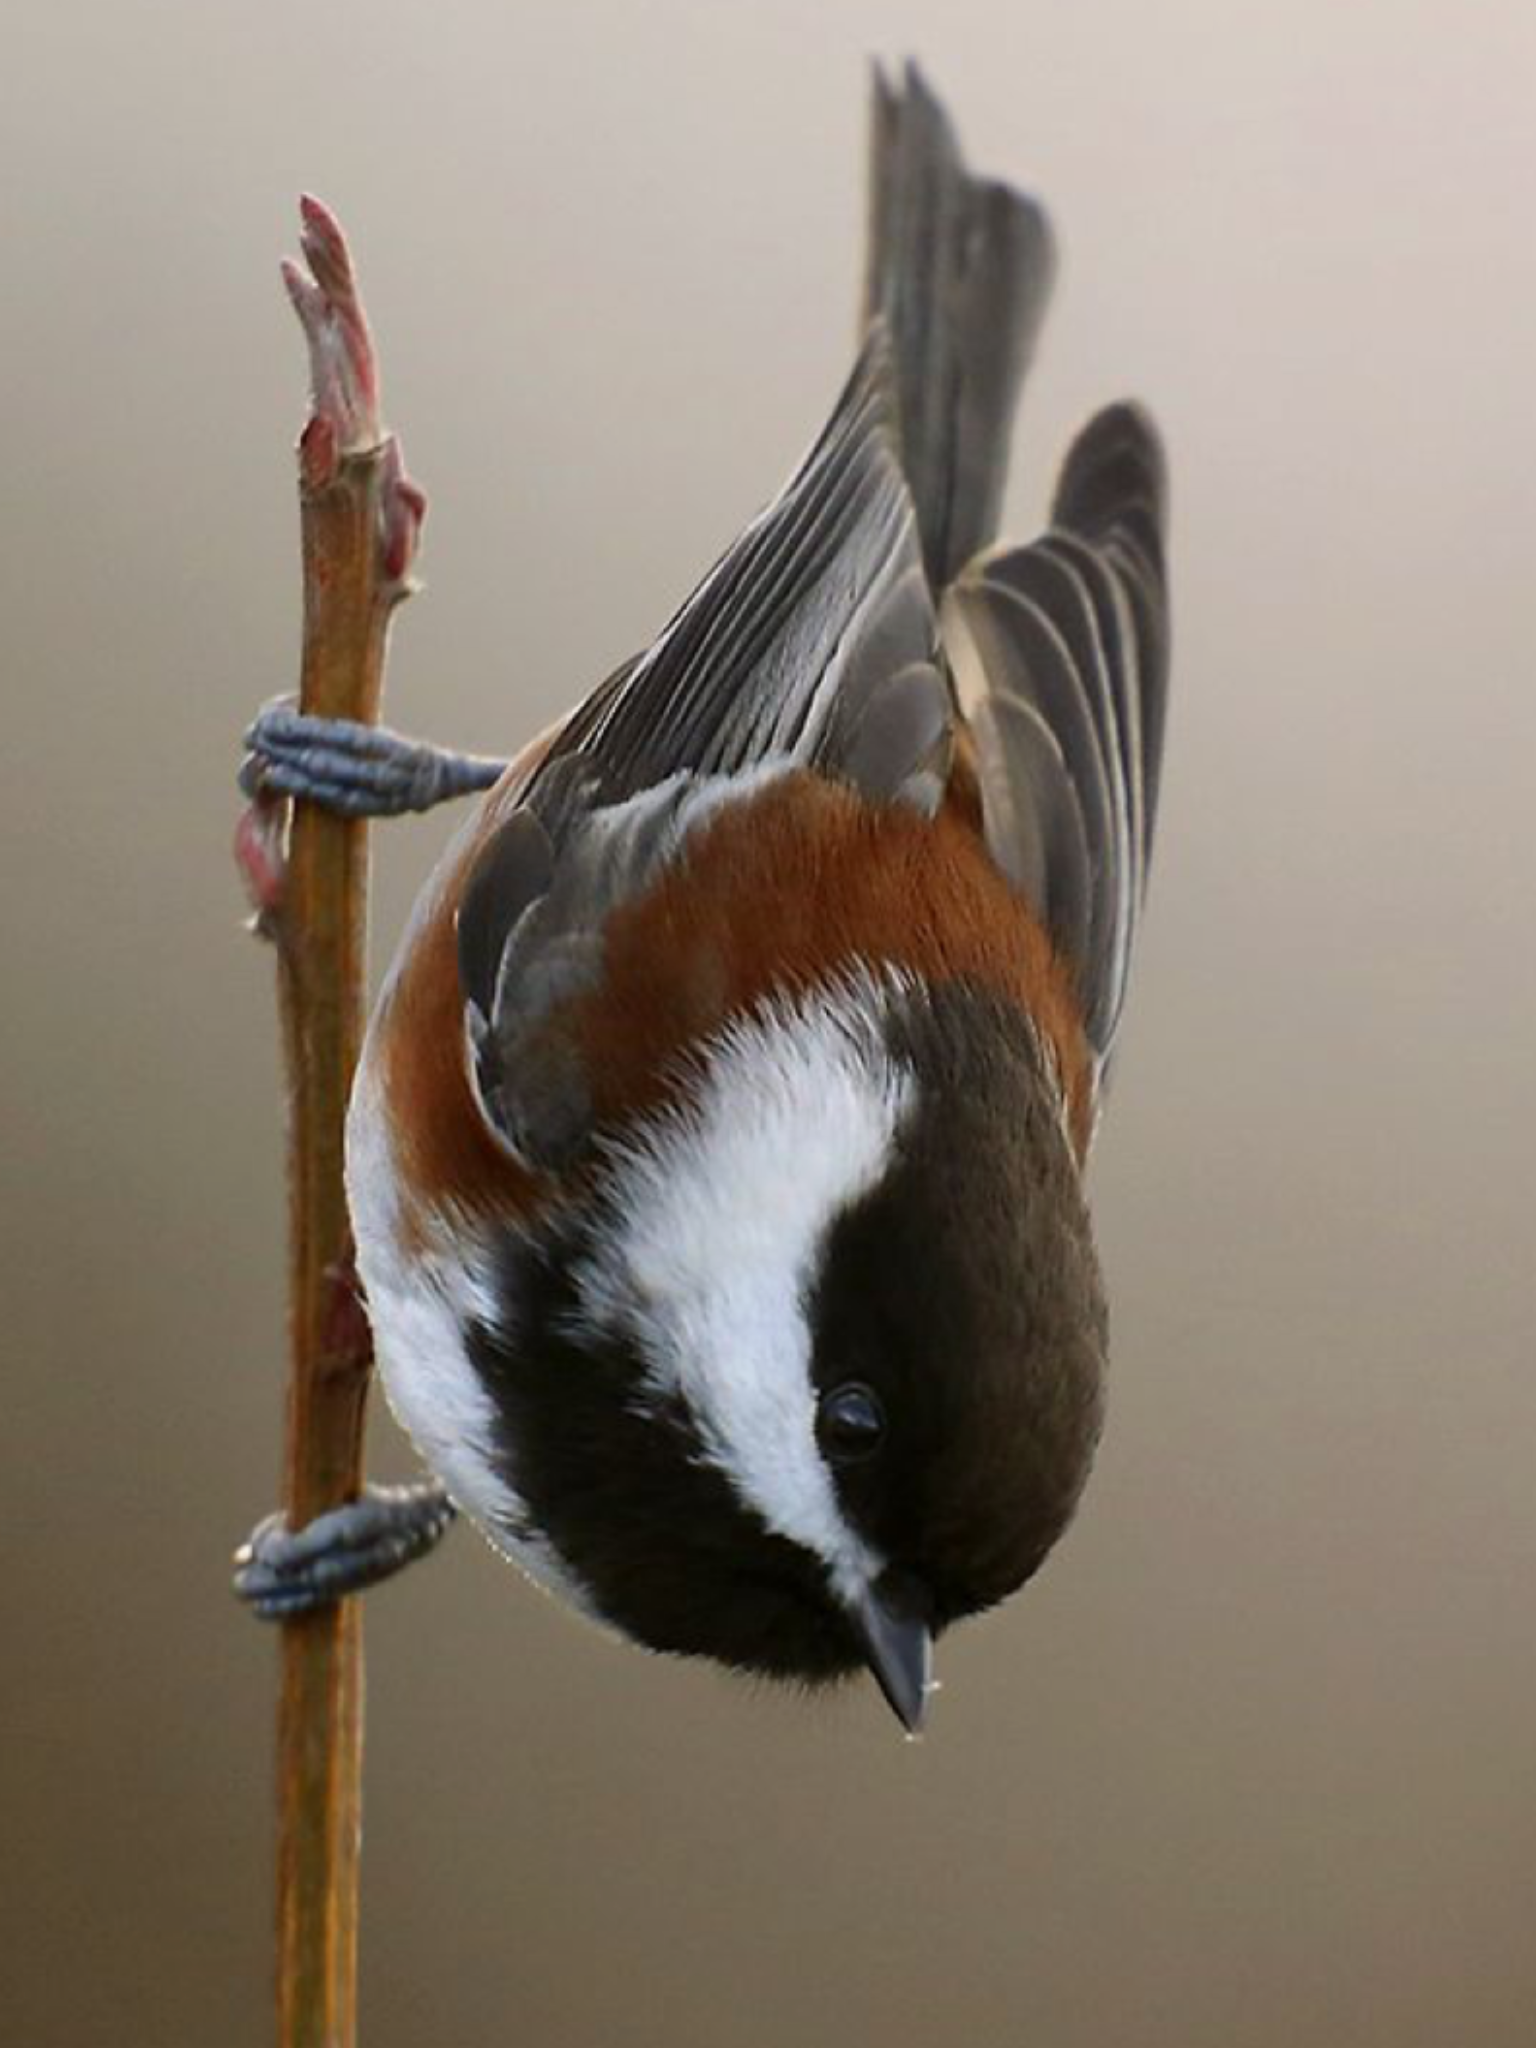 Chestnut-backed Chickadee, Poecile rufescens: Pacific NW/ W-Can/ AK to SW-CA, photo by Janine Russell on 500px // 500px